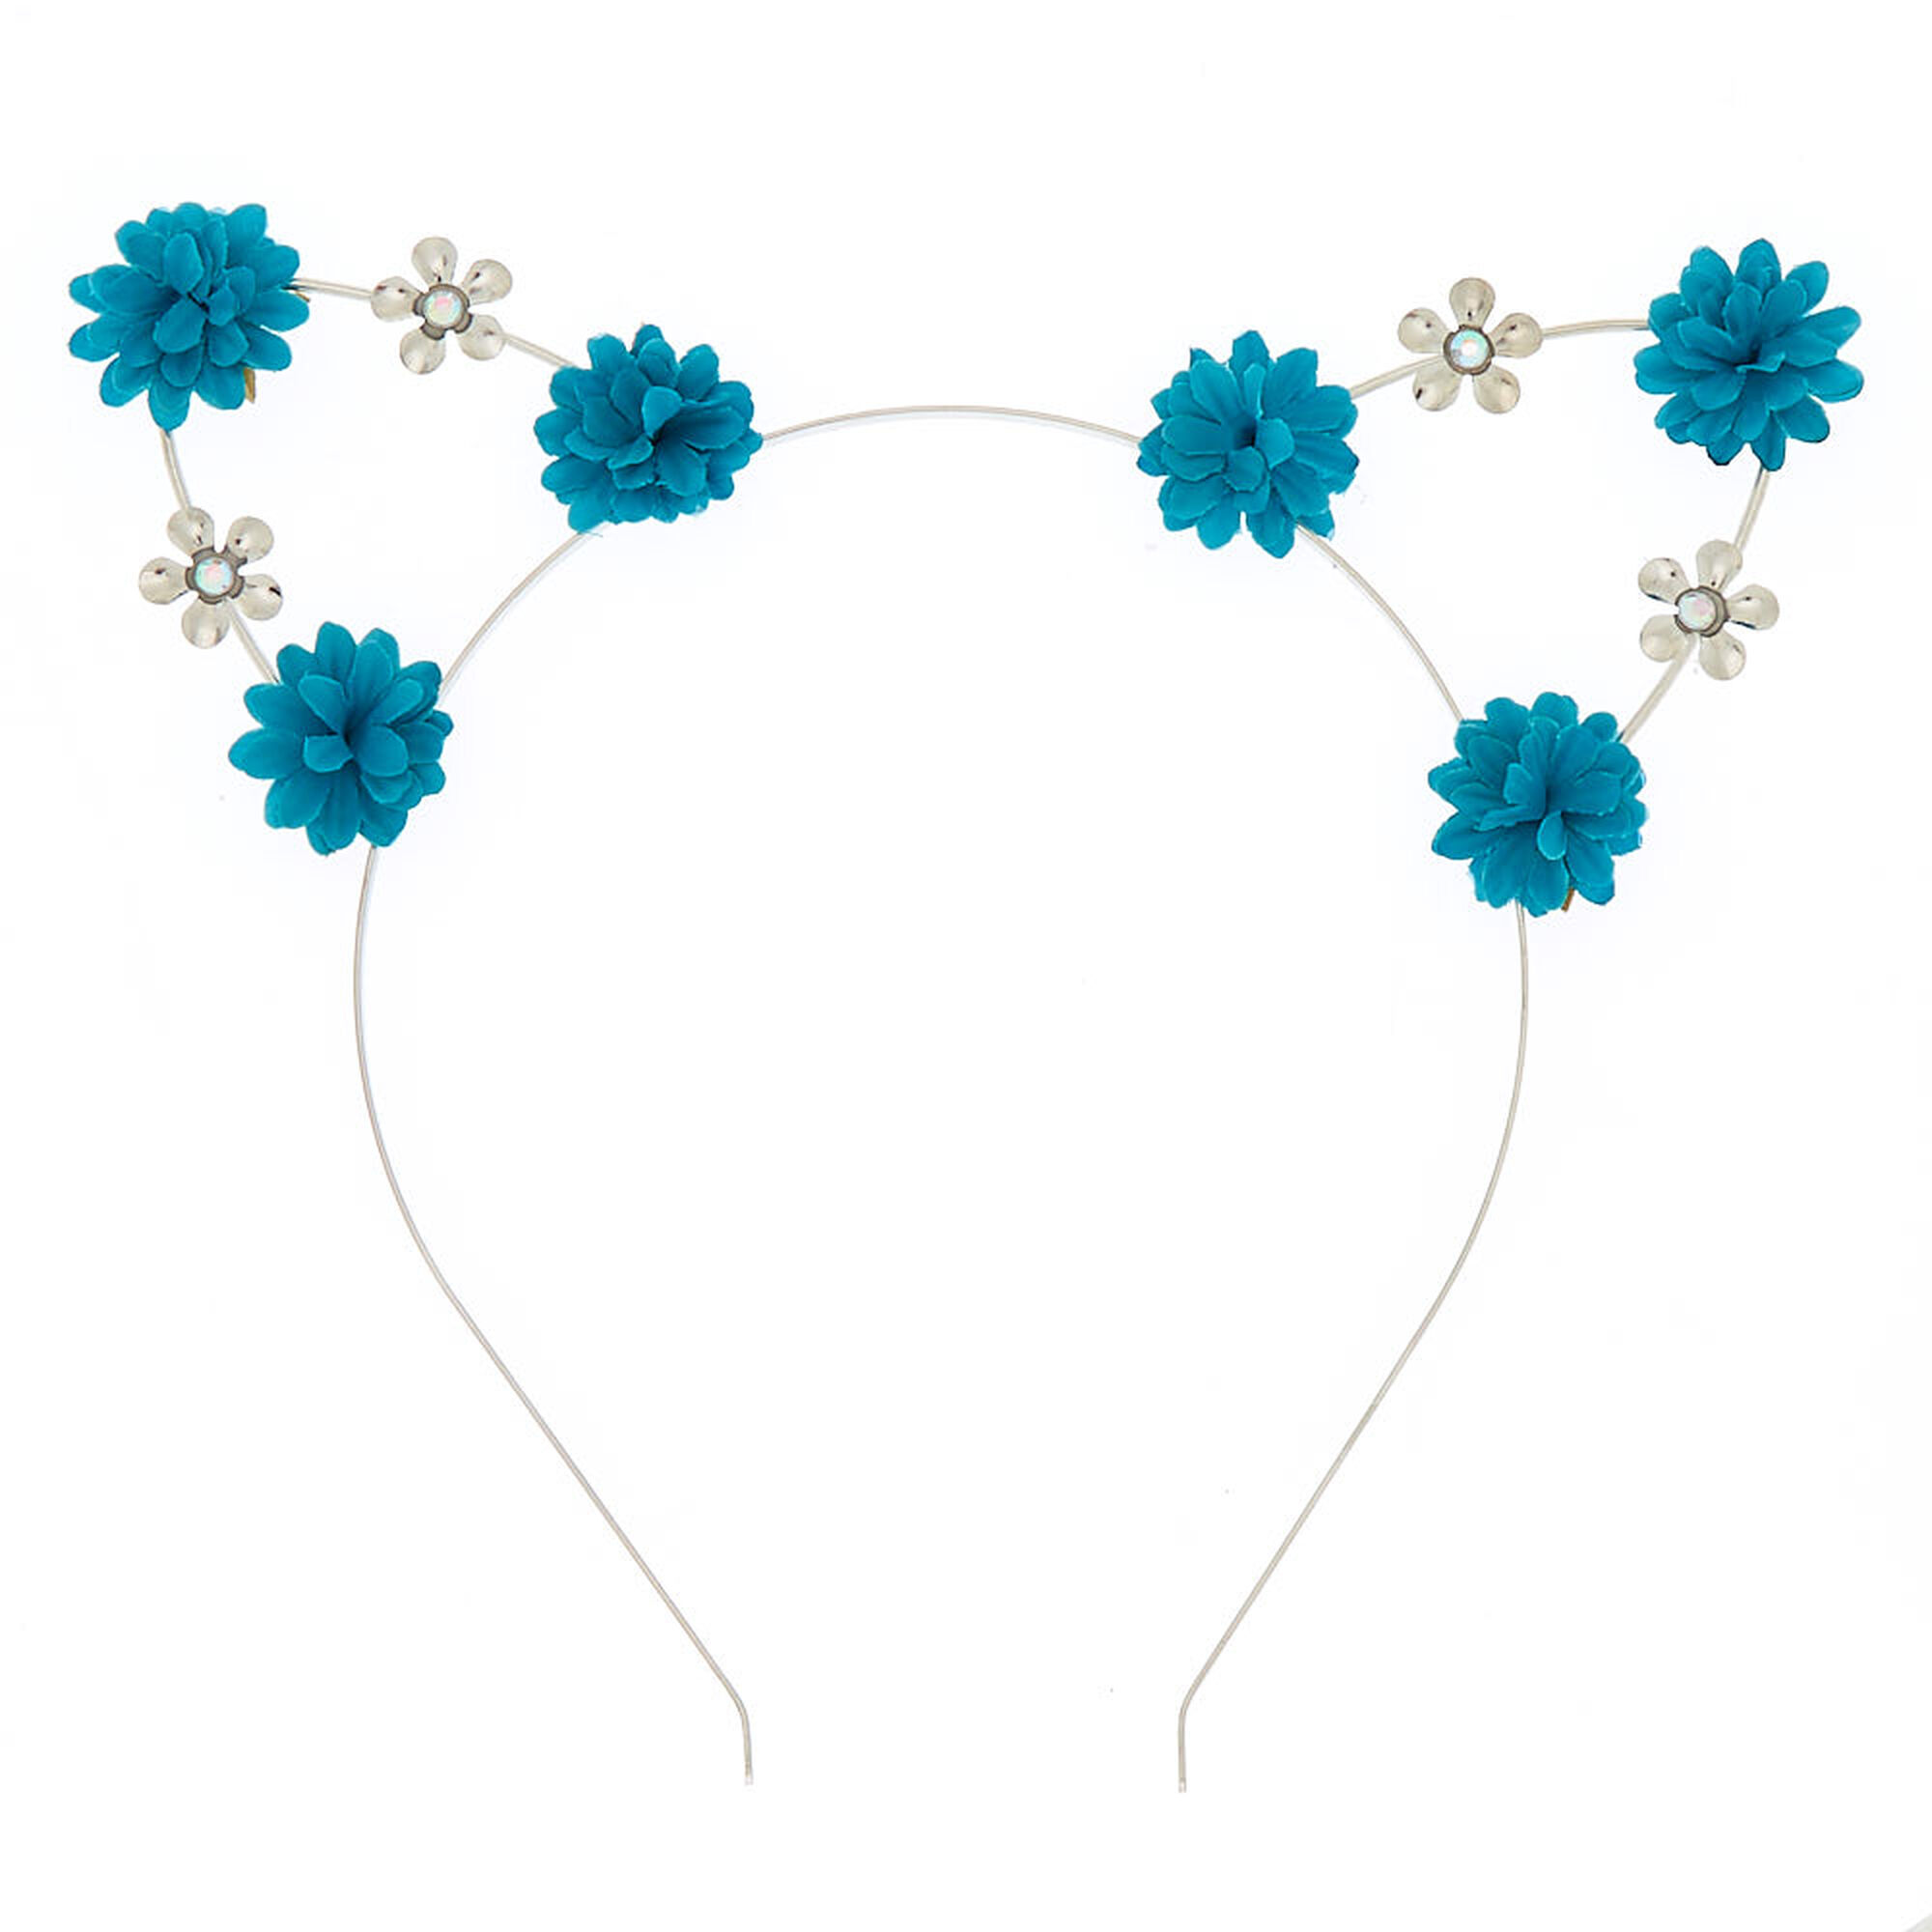 ... Silver Flower Girl Cat Ears Headband - Teal e2213de0c4c